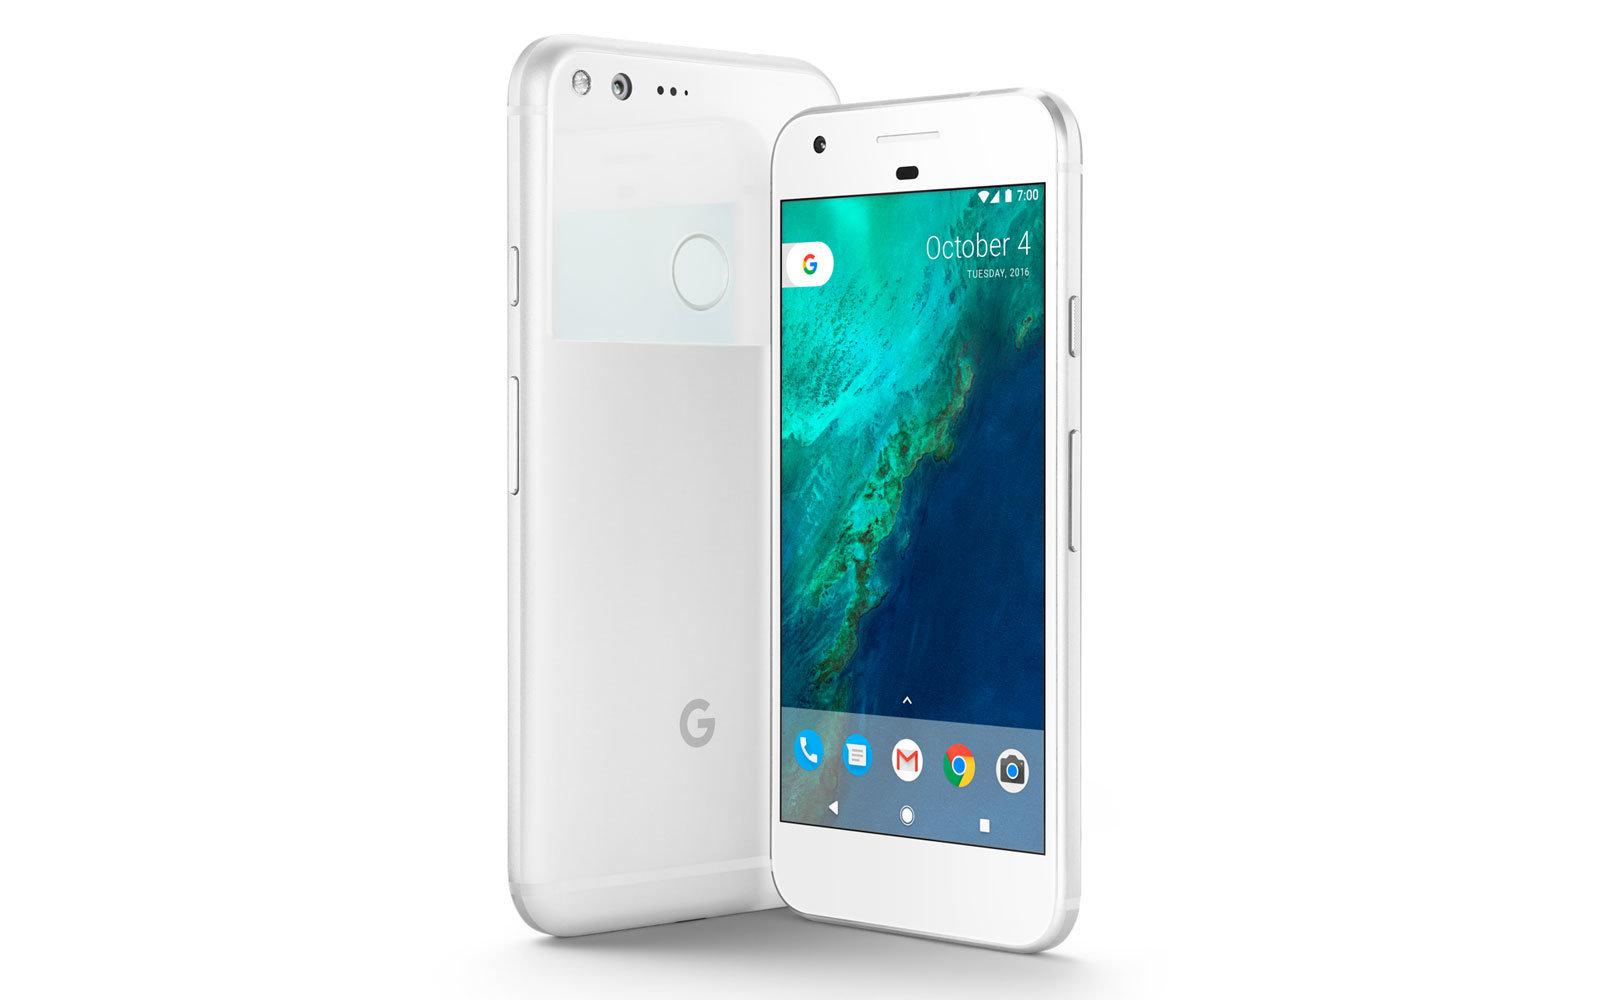 The Google Pixel phones.